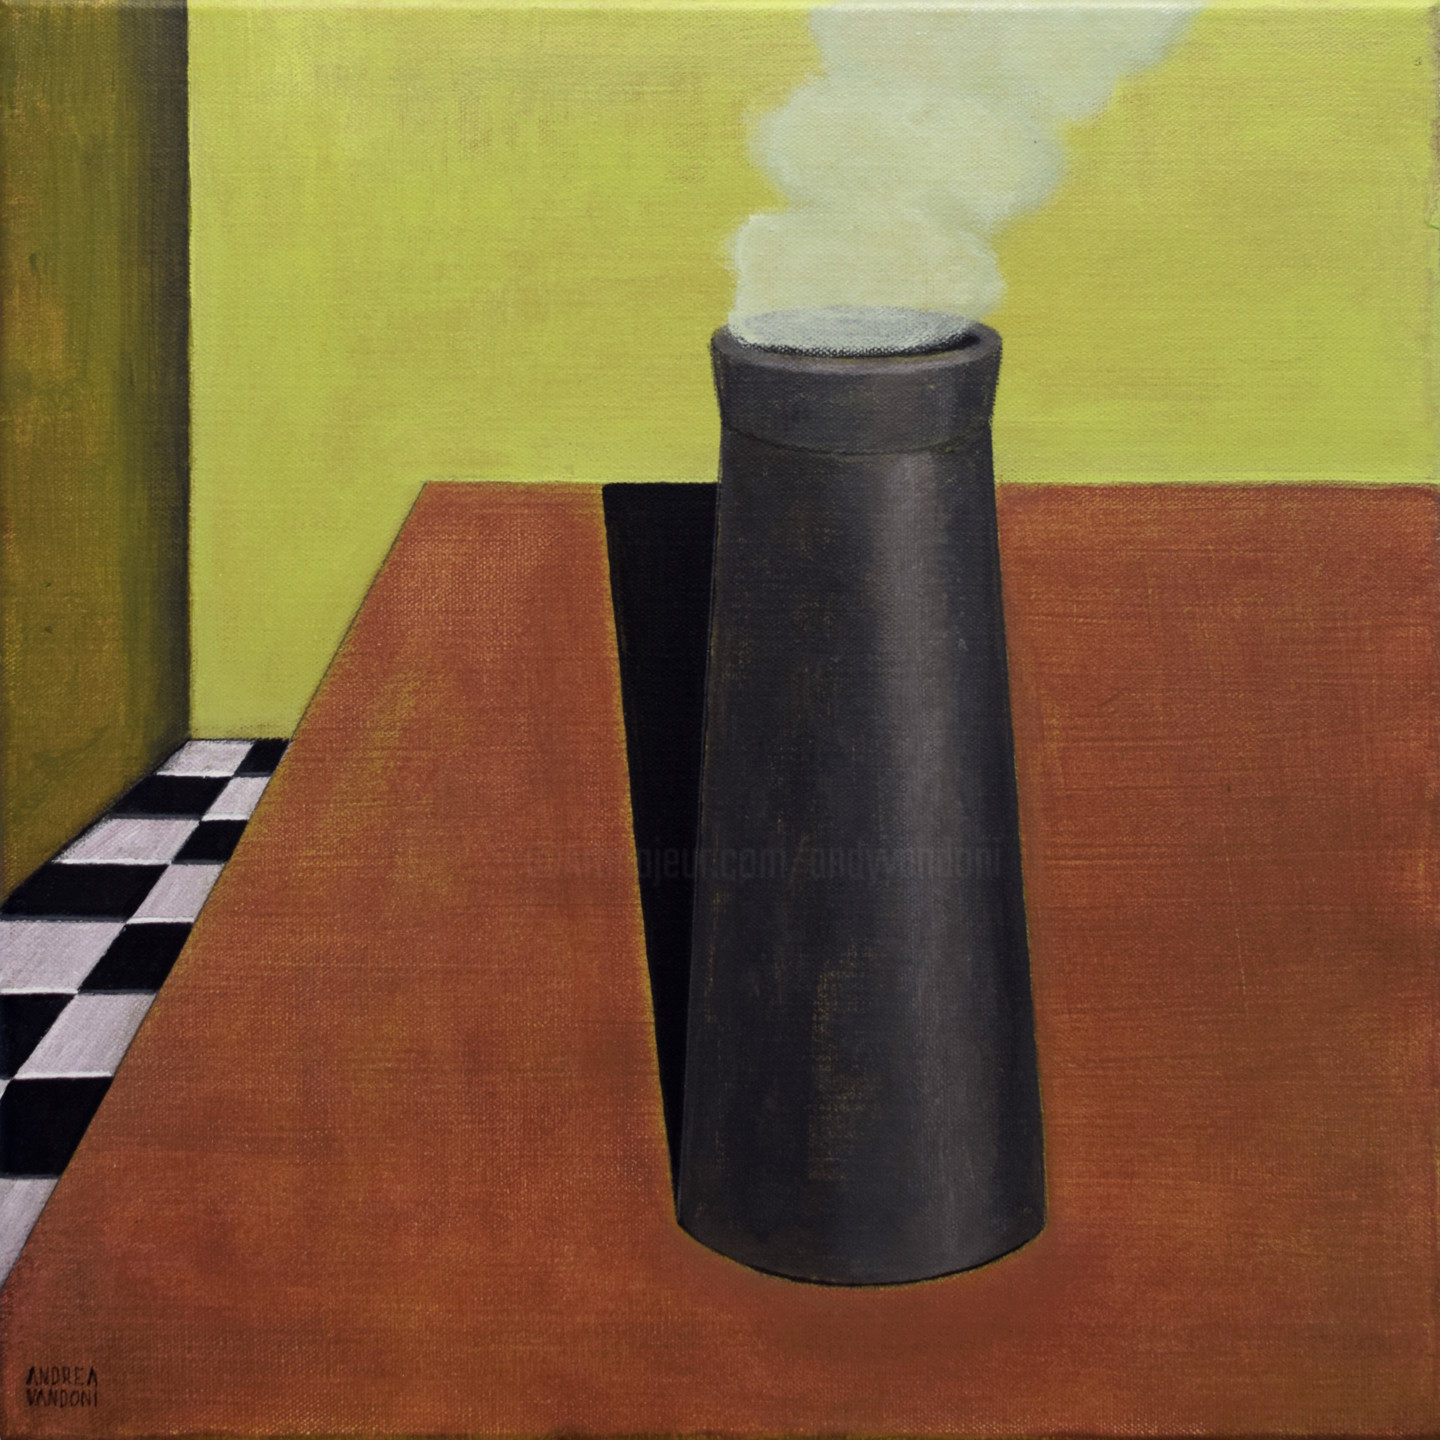 Andrea Vandoni - THE CHIMNEY IS ON THE TABLE